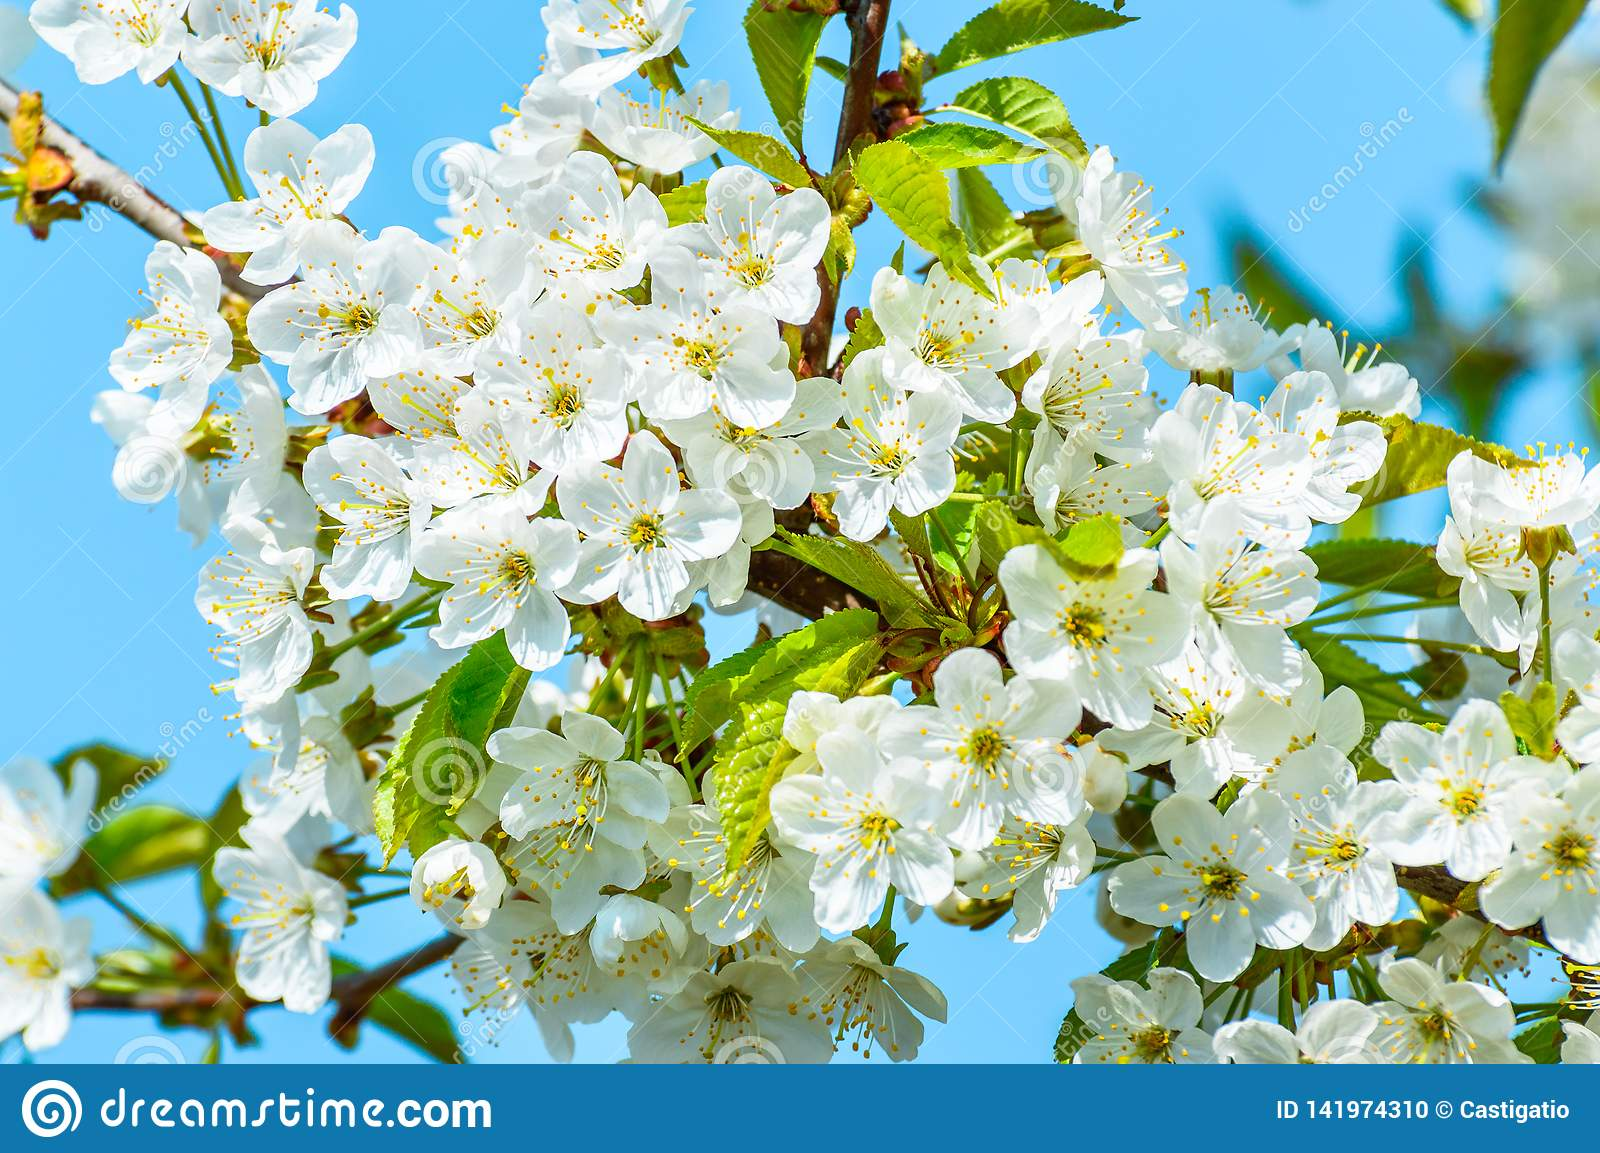 Blooming cherry tree, tiny white flowers against the blue sky